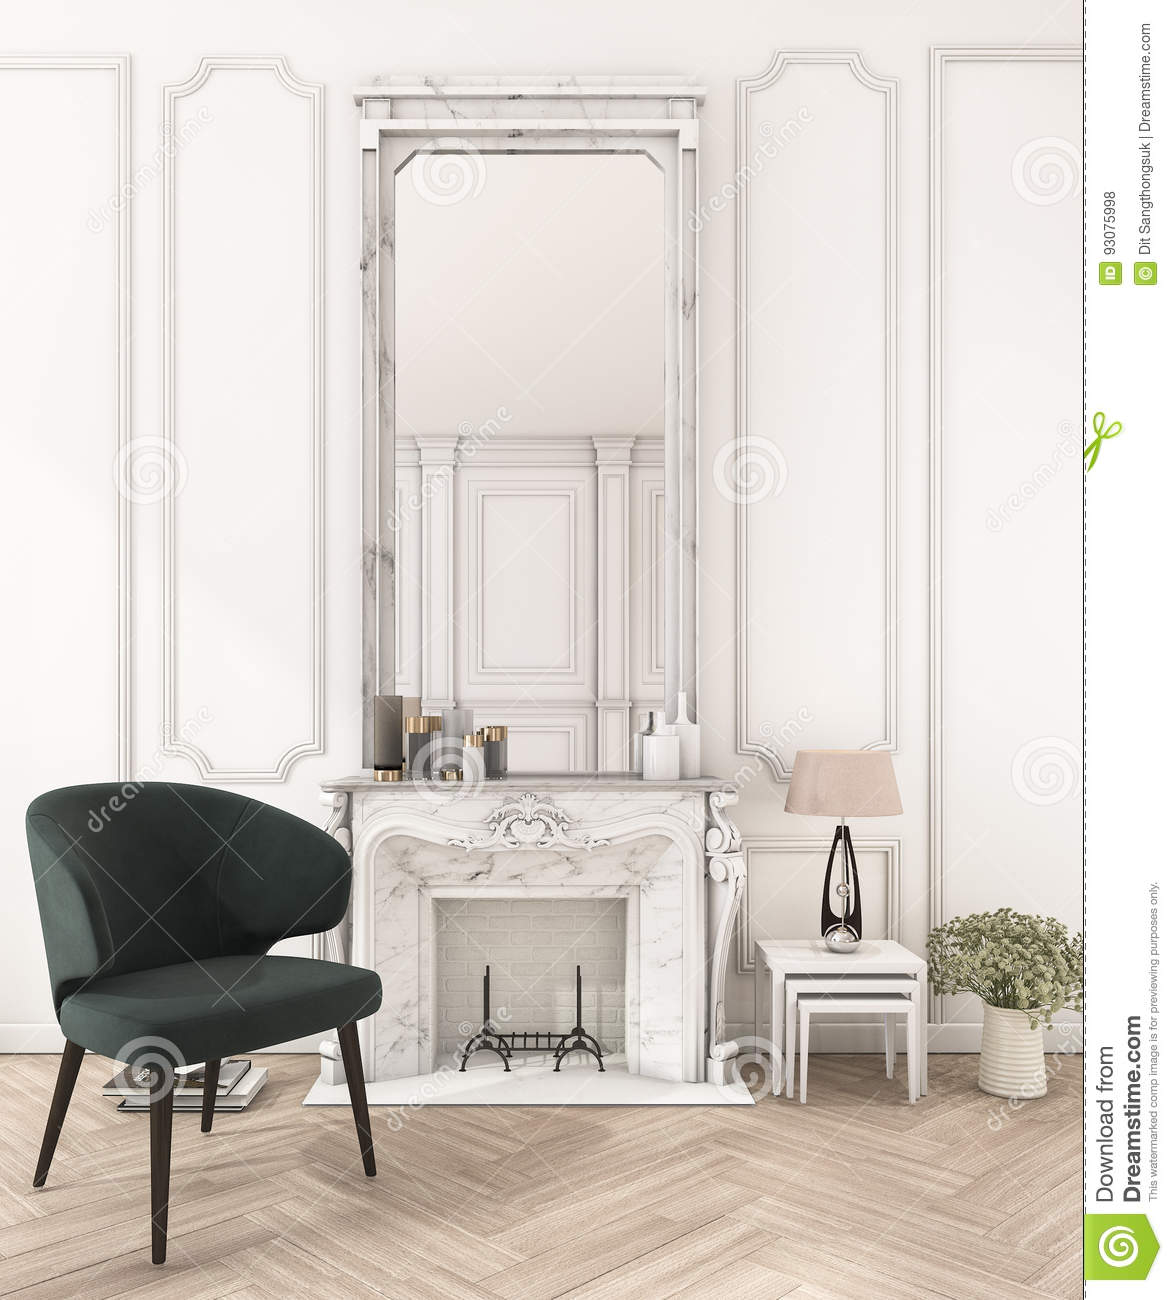 17d Rendering White Classic Wall In Make Up Room Stock Illustration